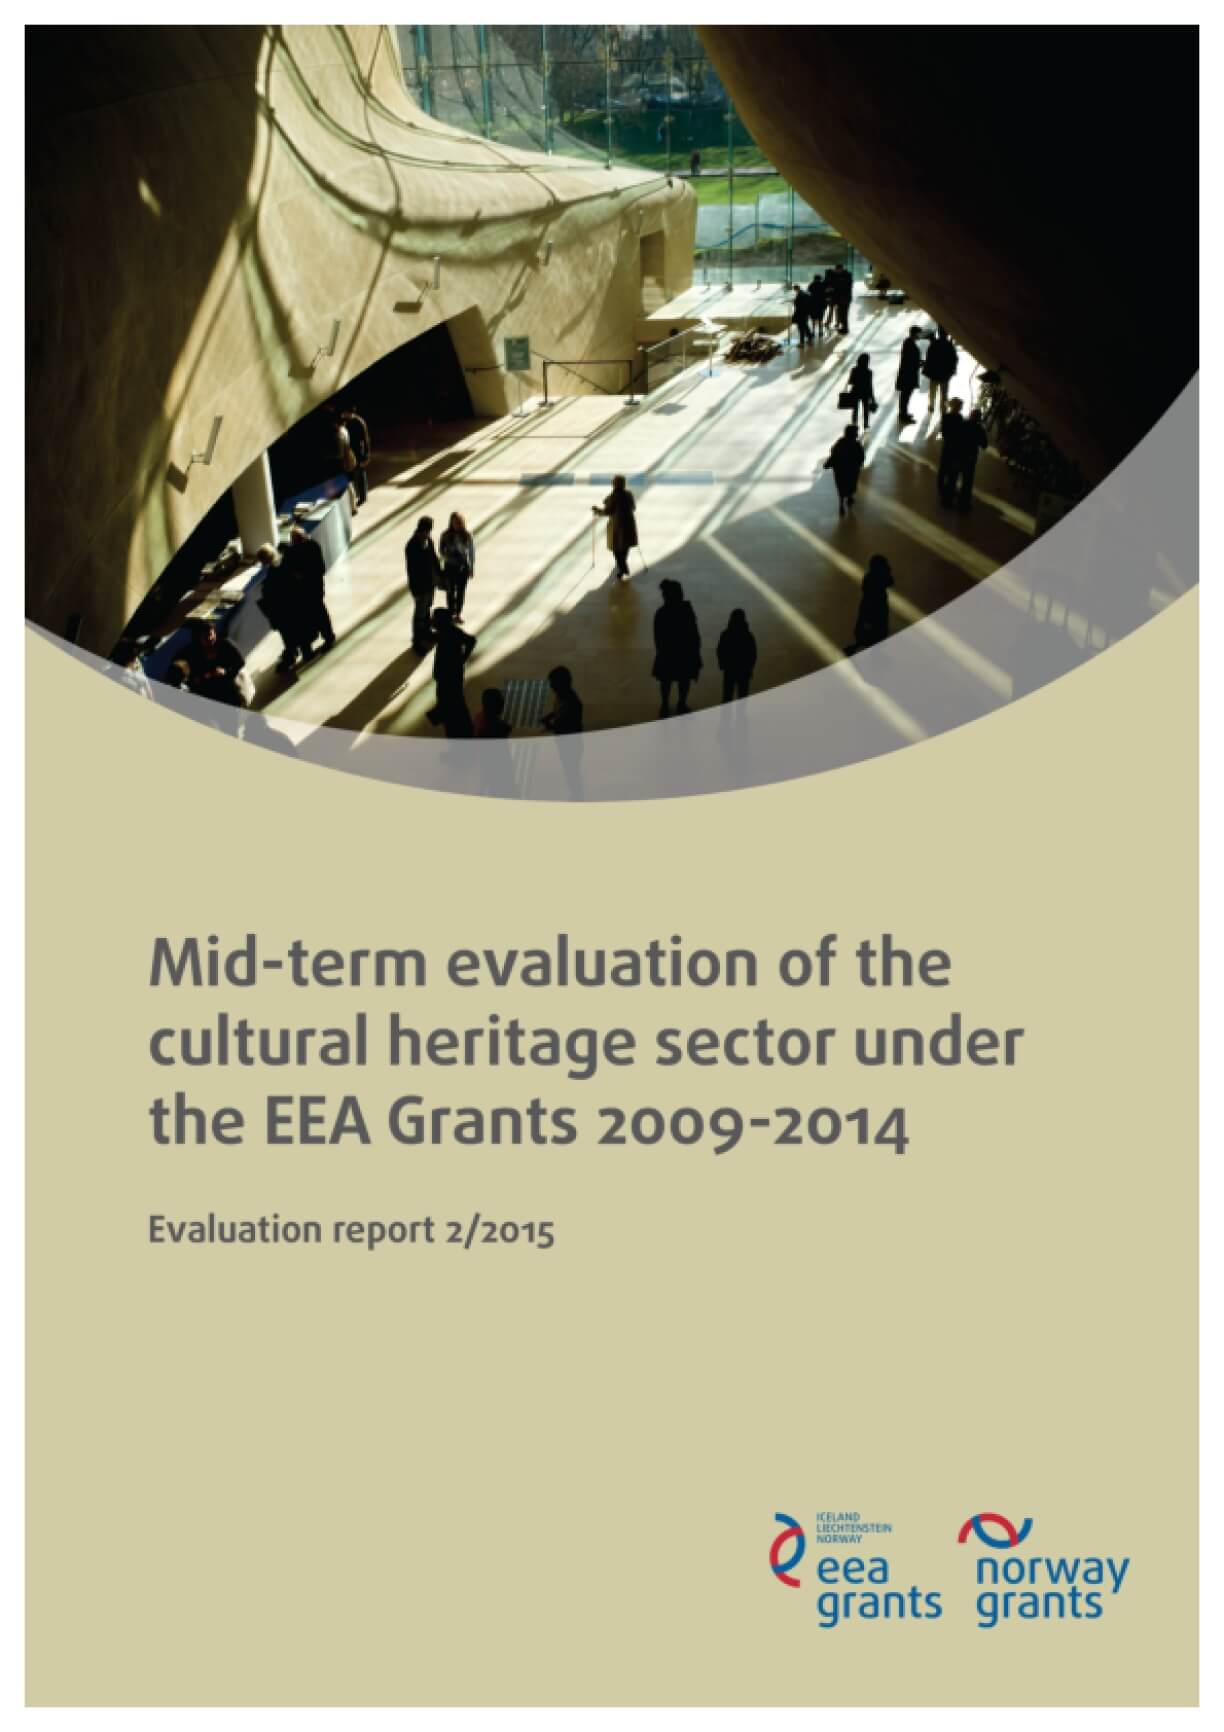 Mid-term Evaluation of the Cultural Heritage Sector Under the EEA Grants 2009-2014